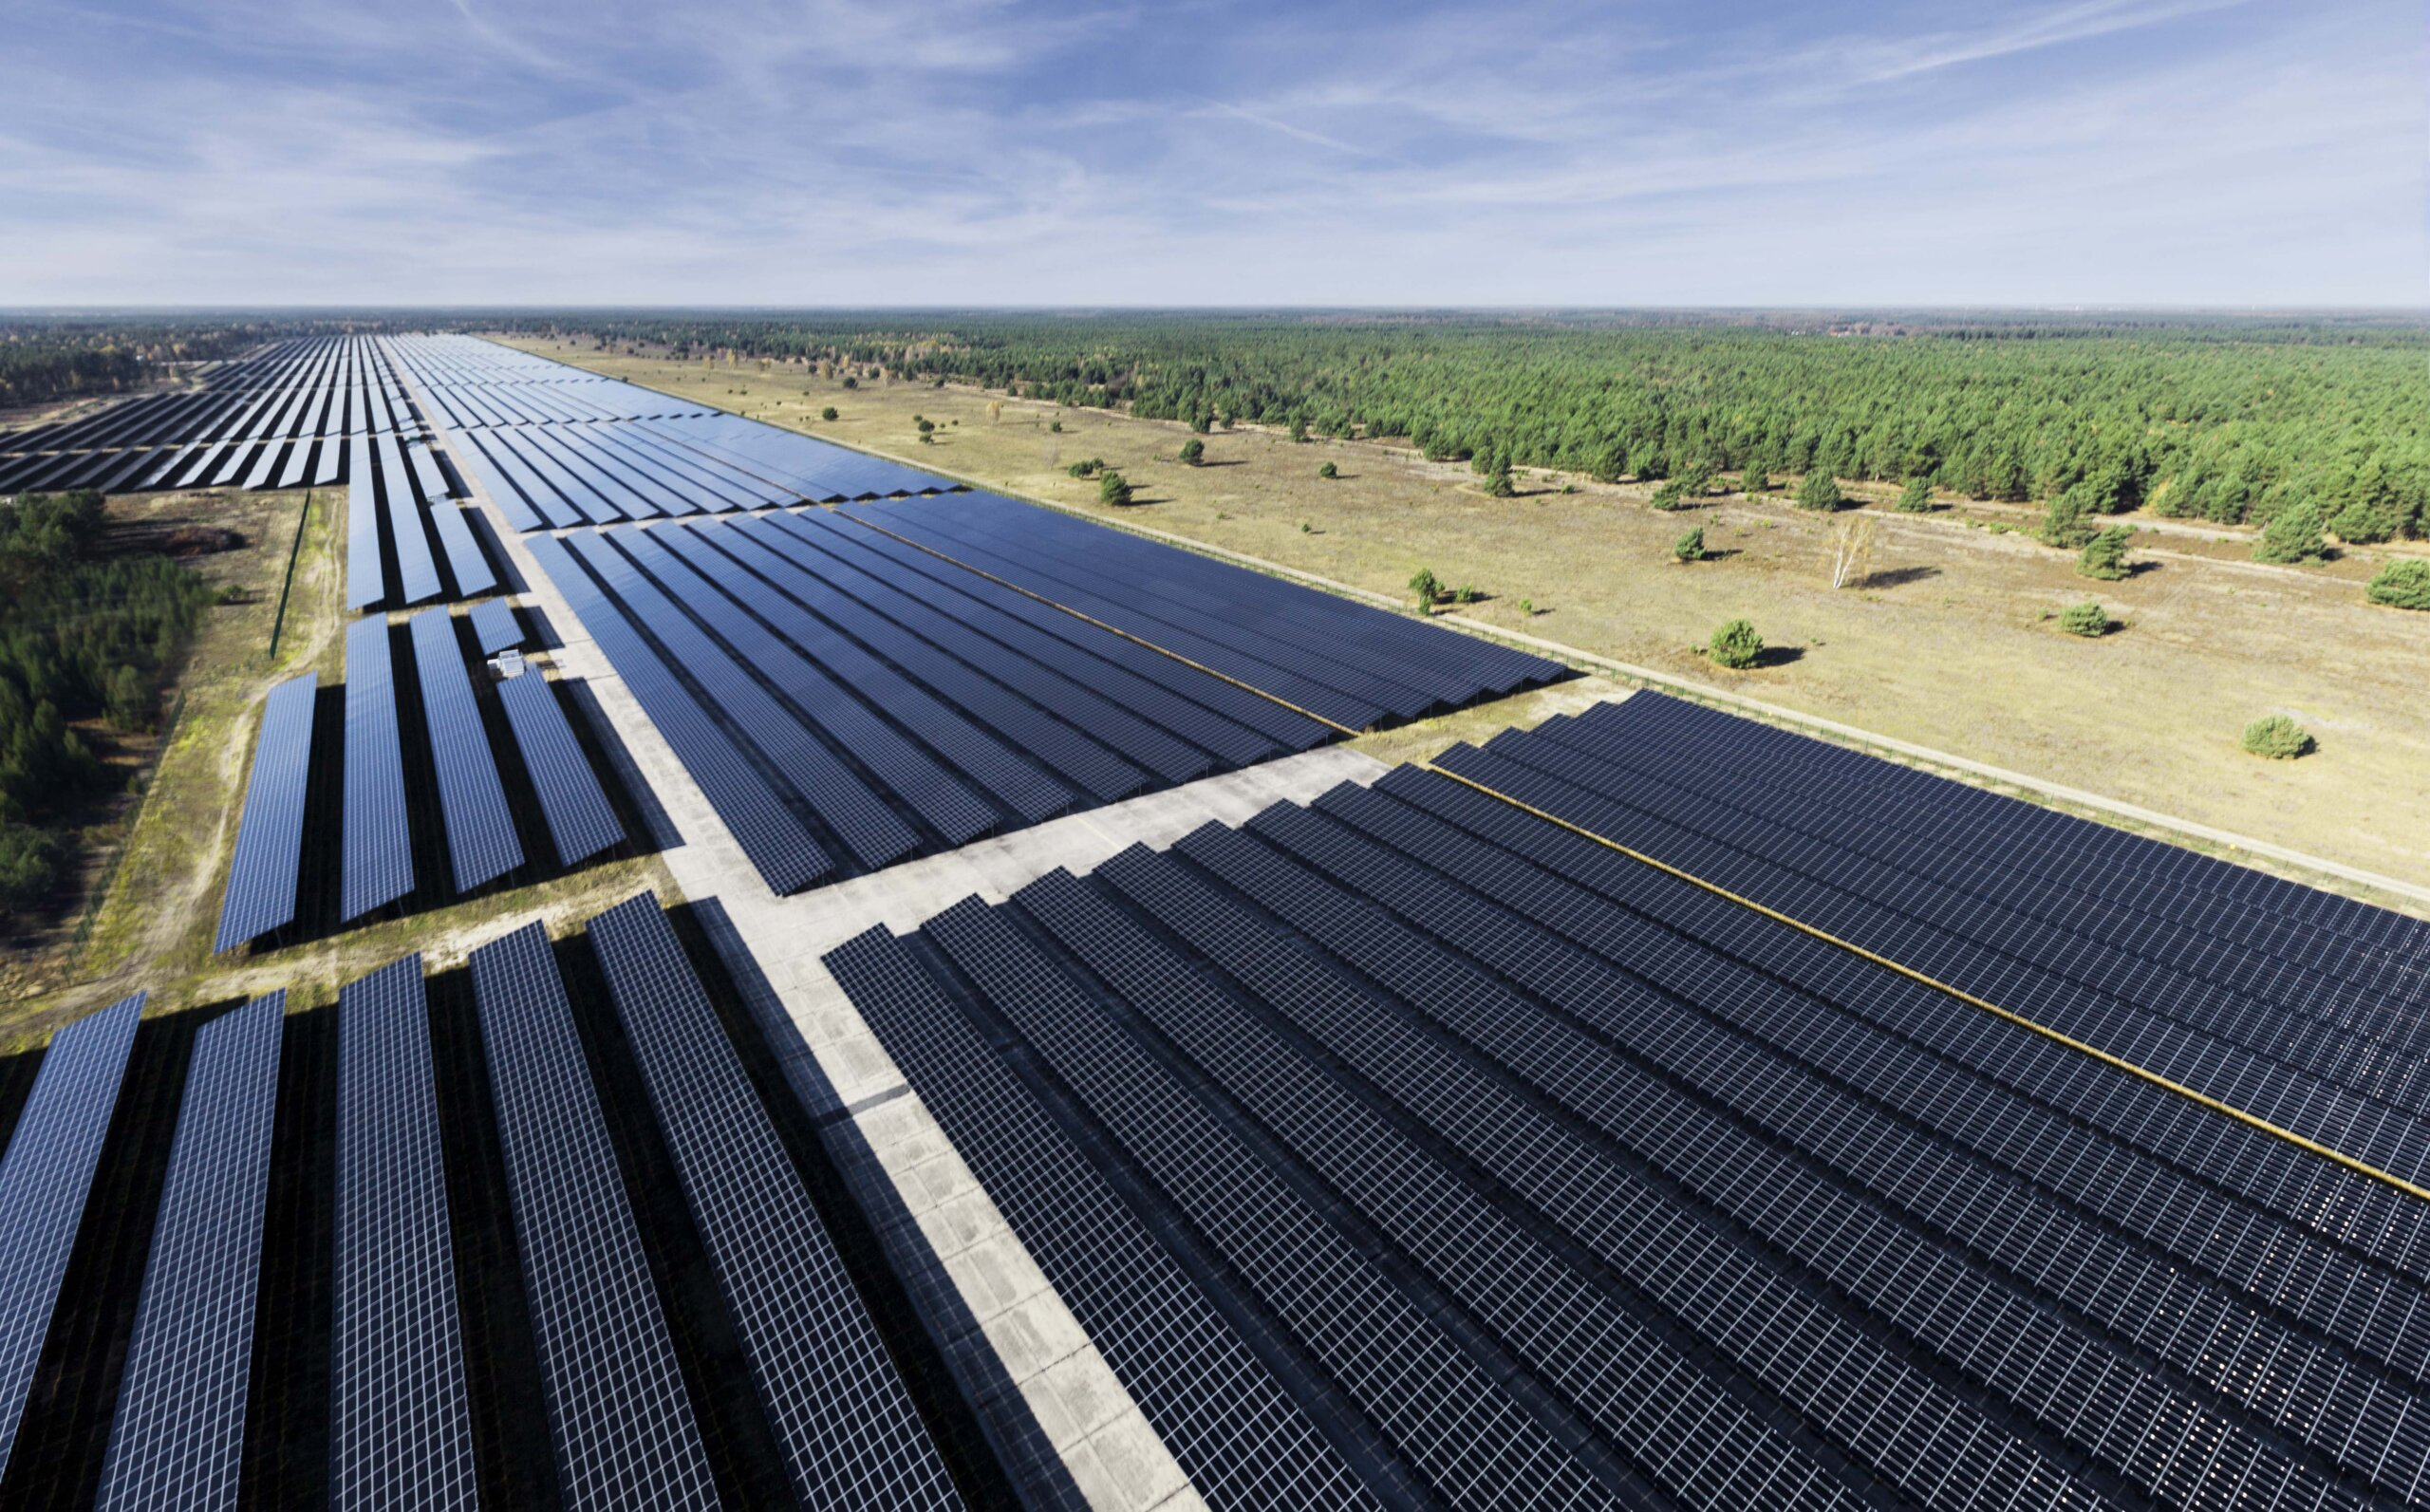 Getka, Unimot, First Solar cooperate on solar projects in Poland